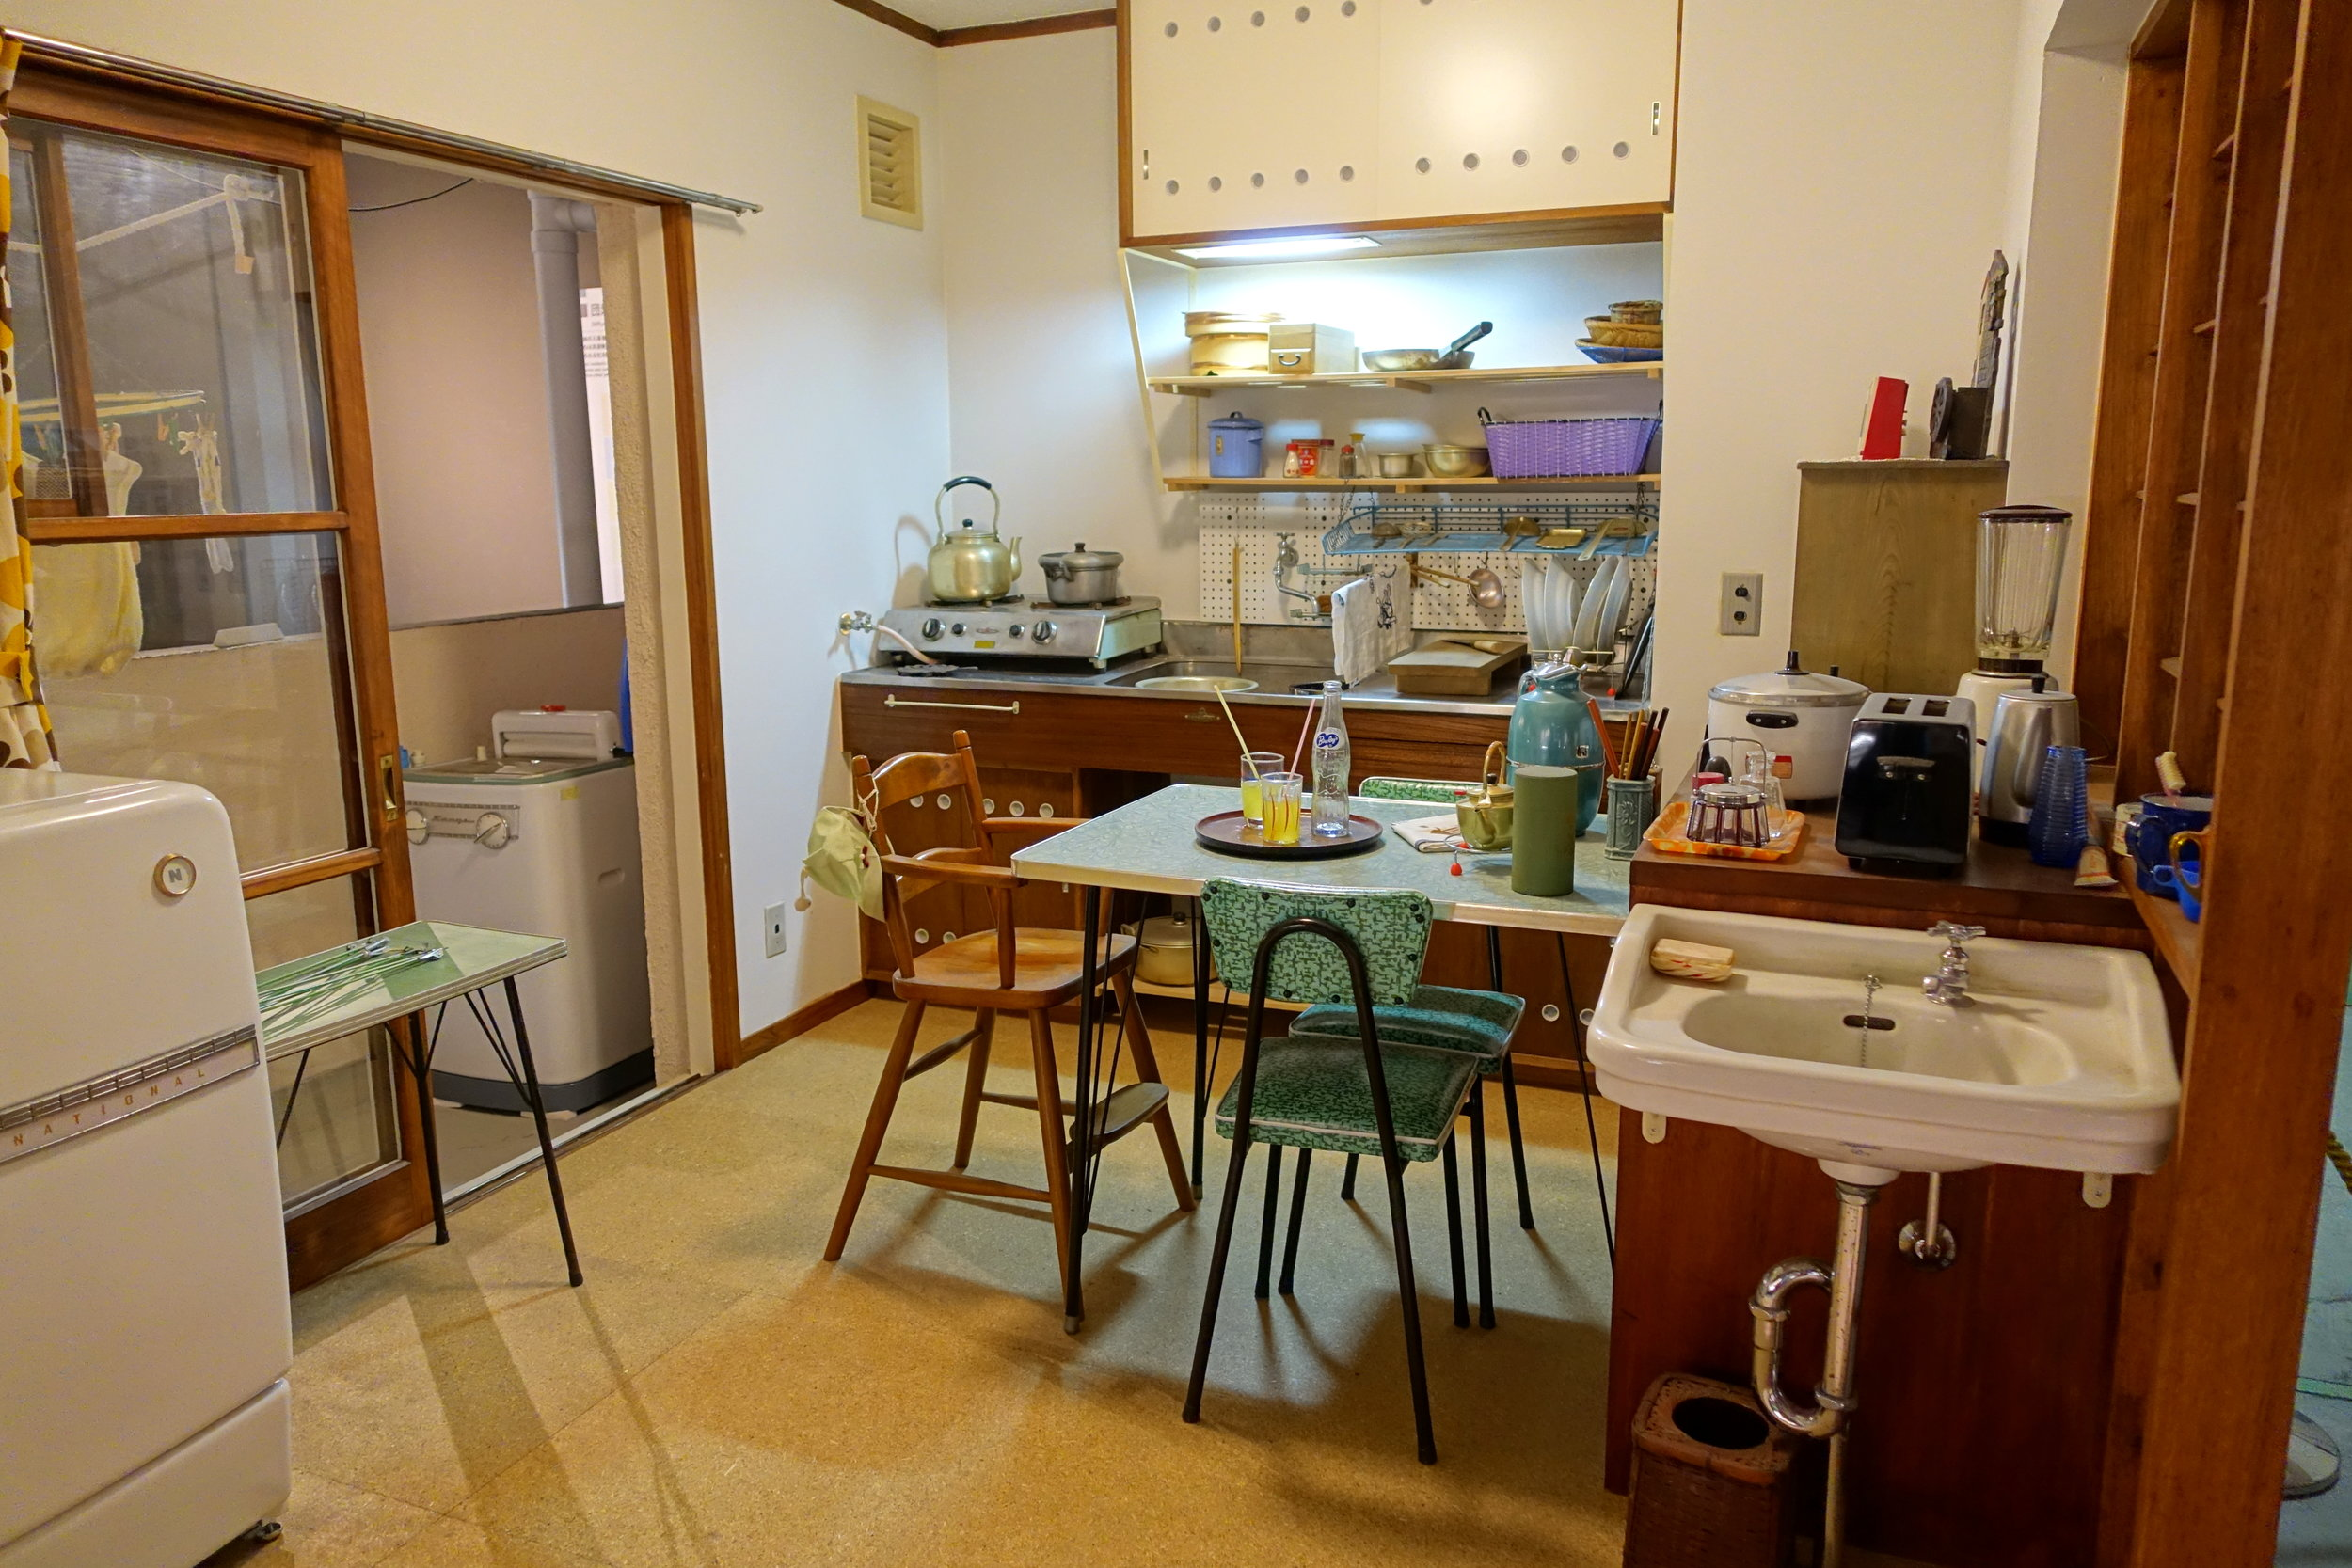 A Japanese kitchen in the Hibarigaoka Housing Complex circa 1962. 1:1 model at the Edo Tokyo Museum. Photo by Daderot, 2017.